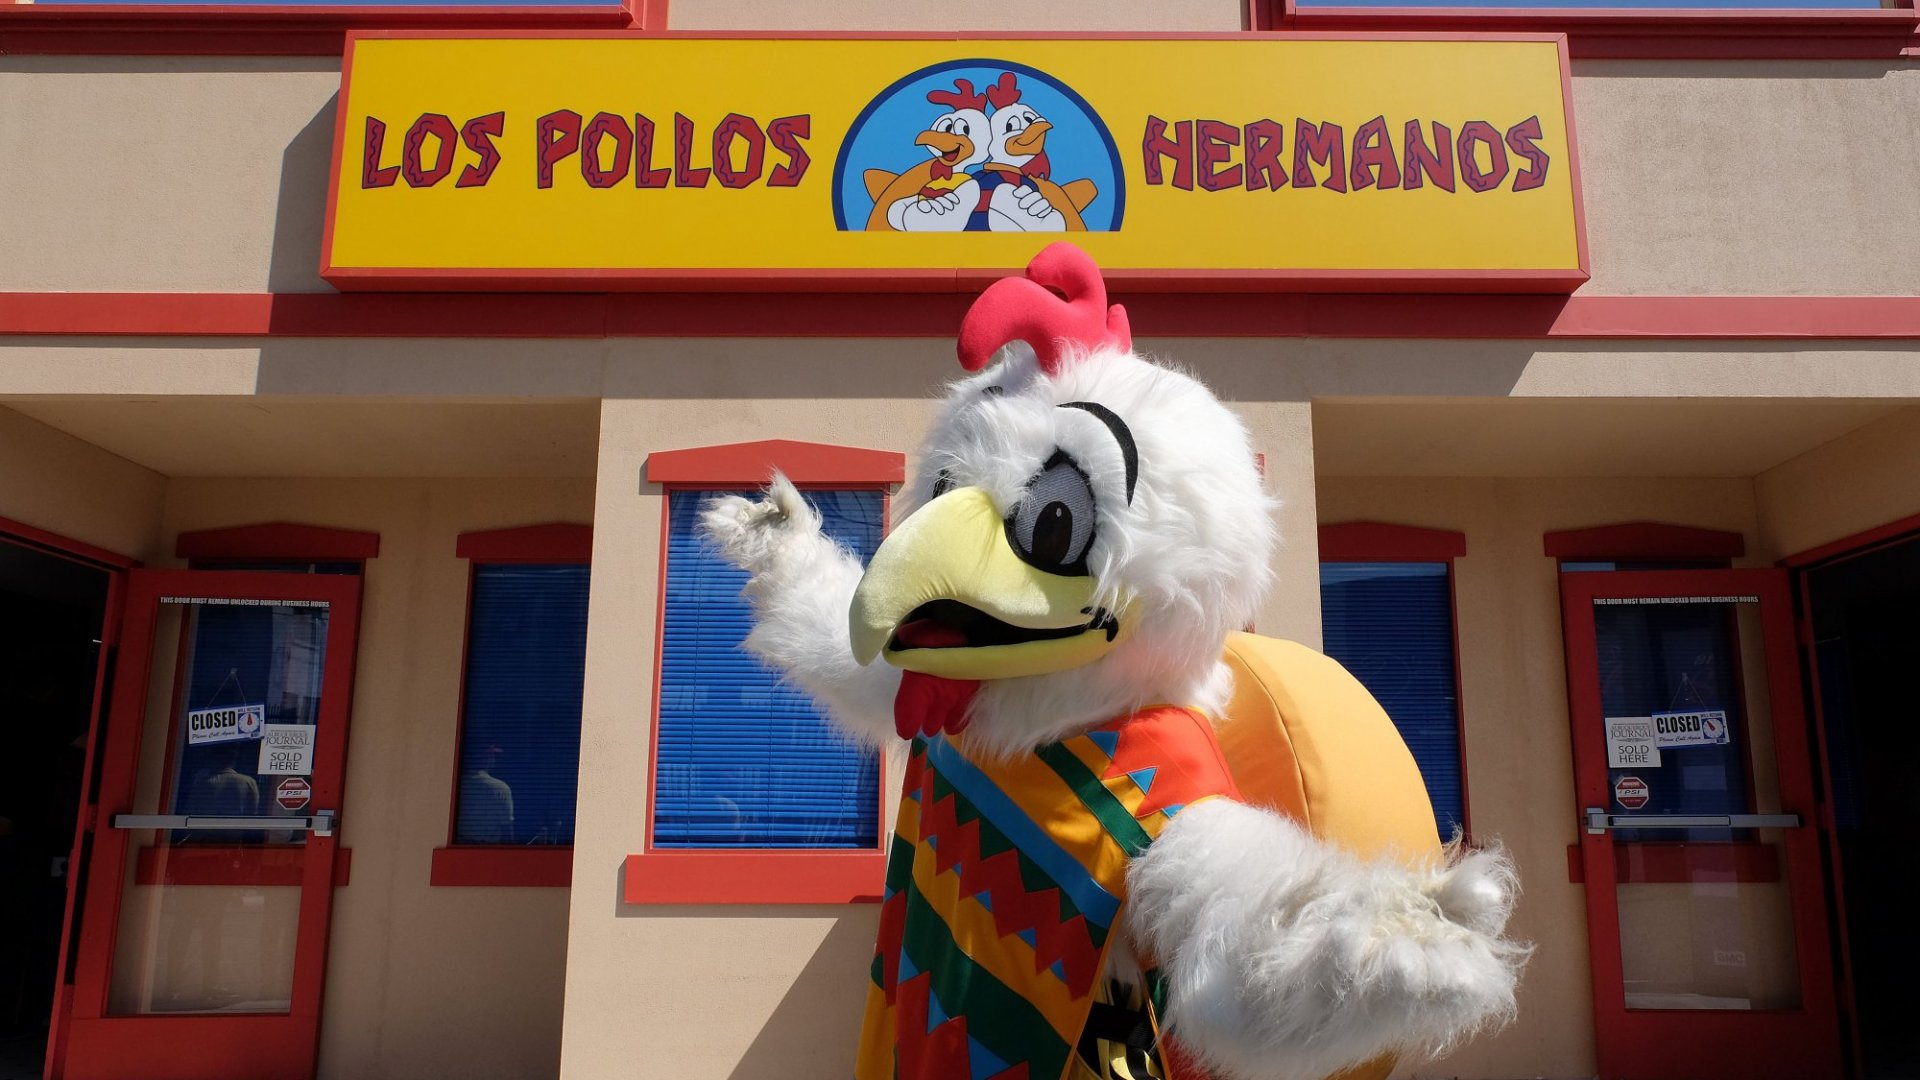 AMC Delivered 'Los Pollos Hermanos' Chicken to 'Better Call Saul' Fans. Here's Why It Didn't Work